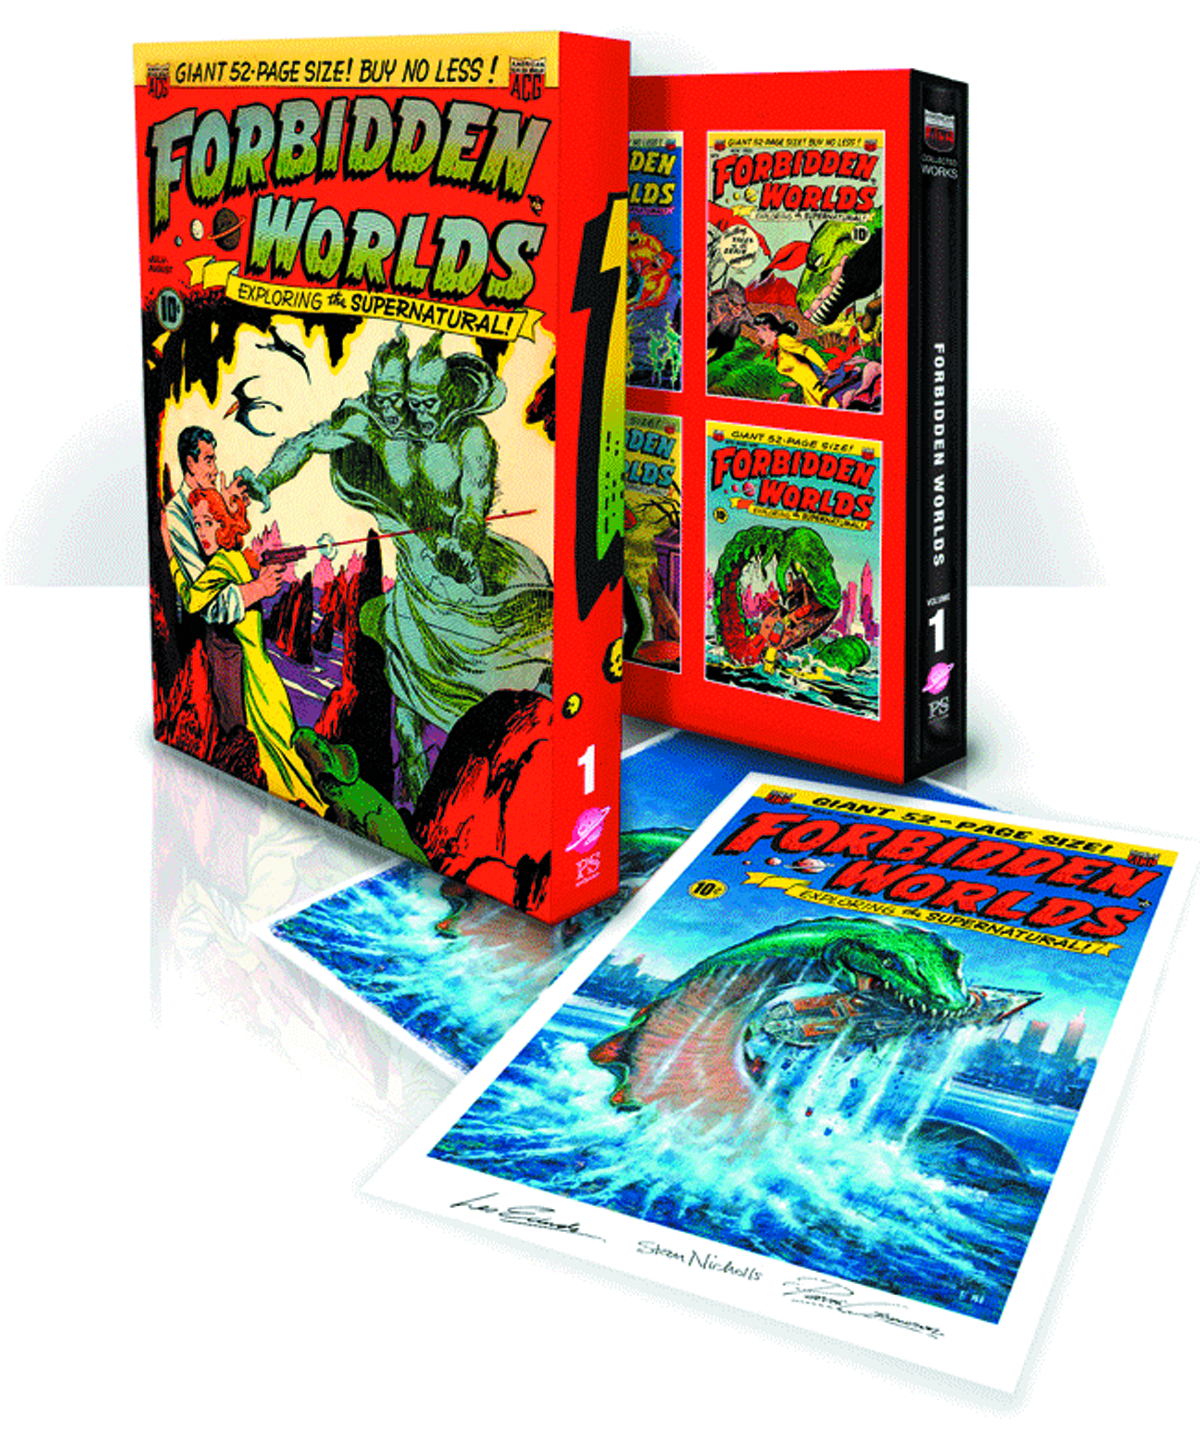 ACG COLL WORKS FORBIDDEN WORLDS SLIPCASE ED VOL 01